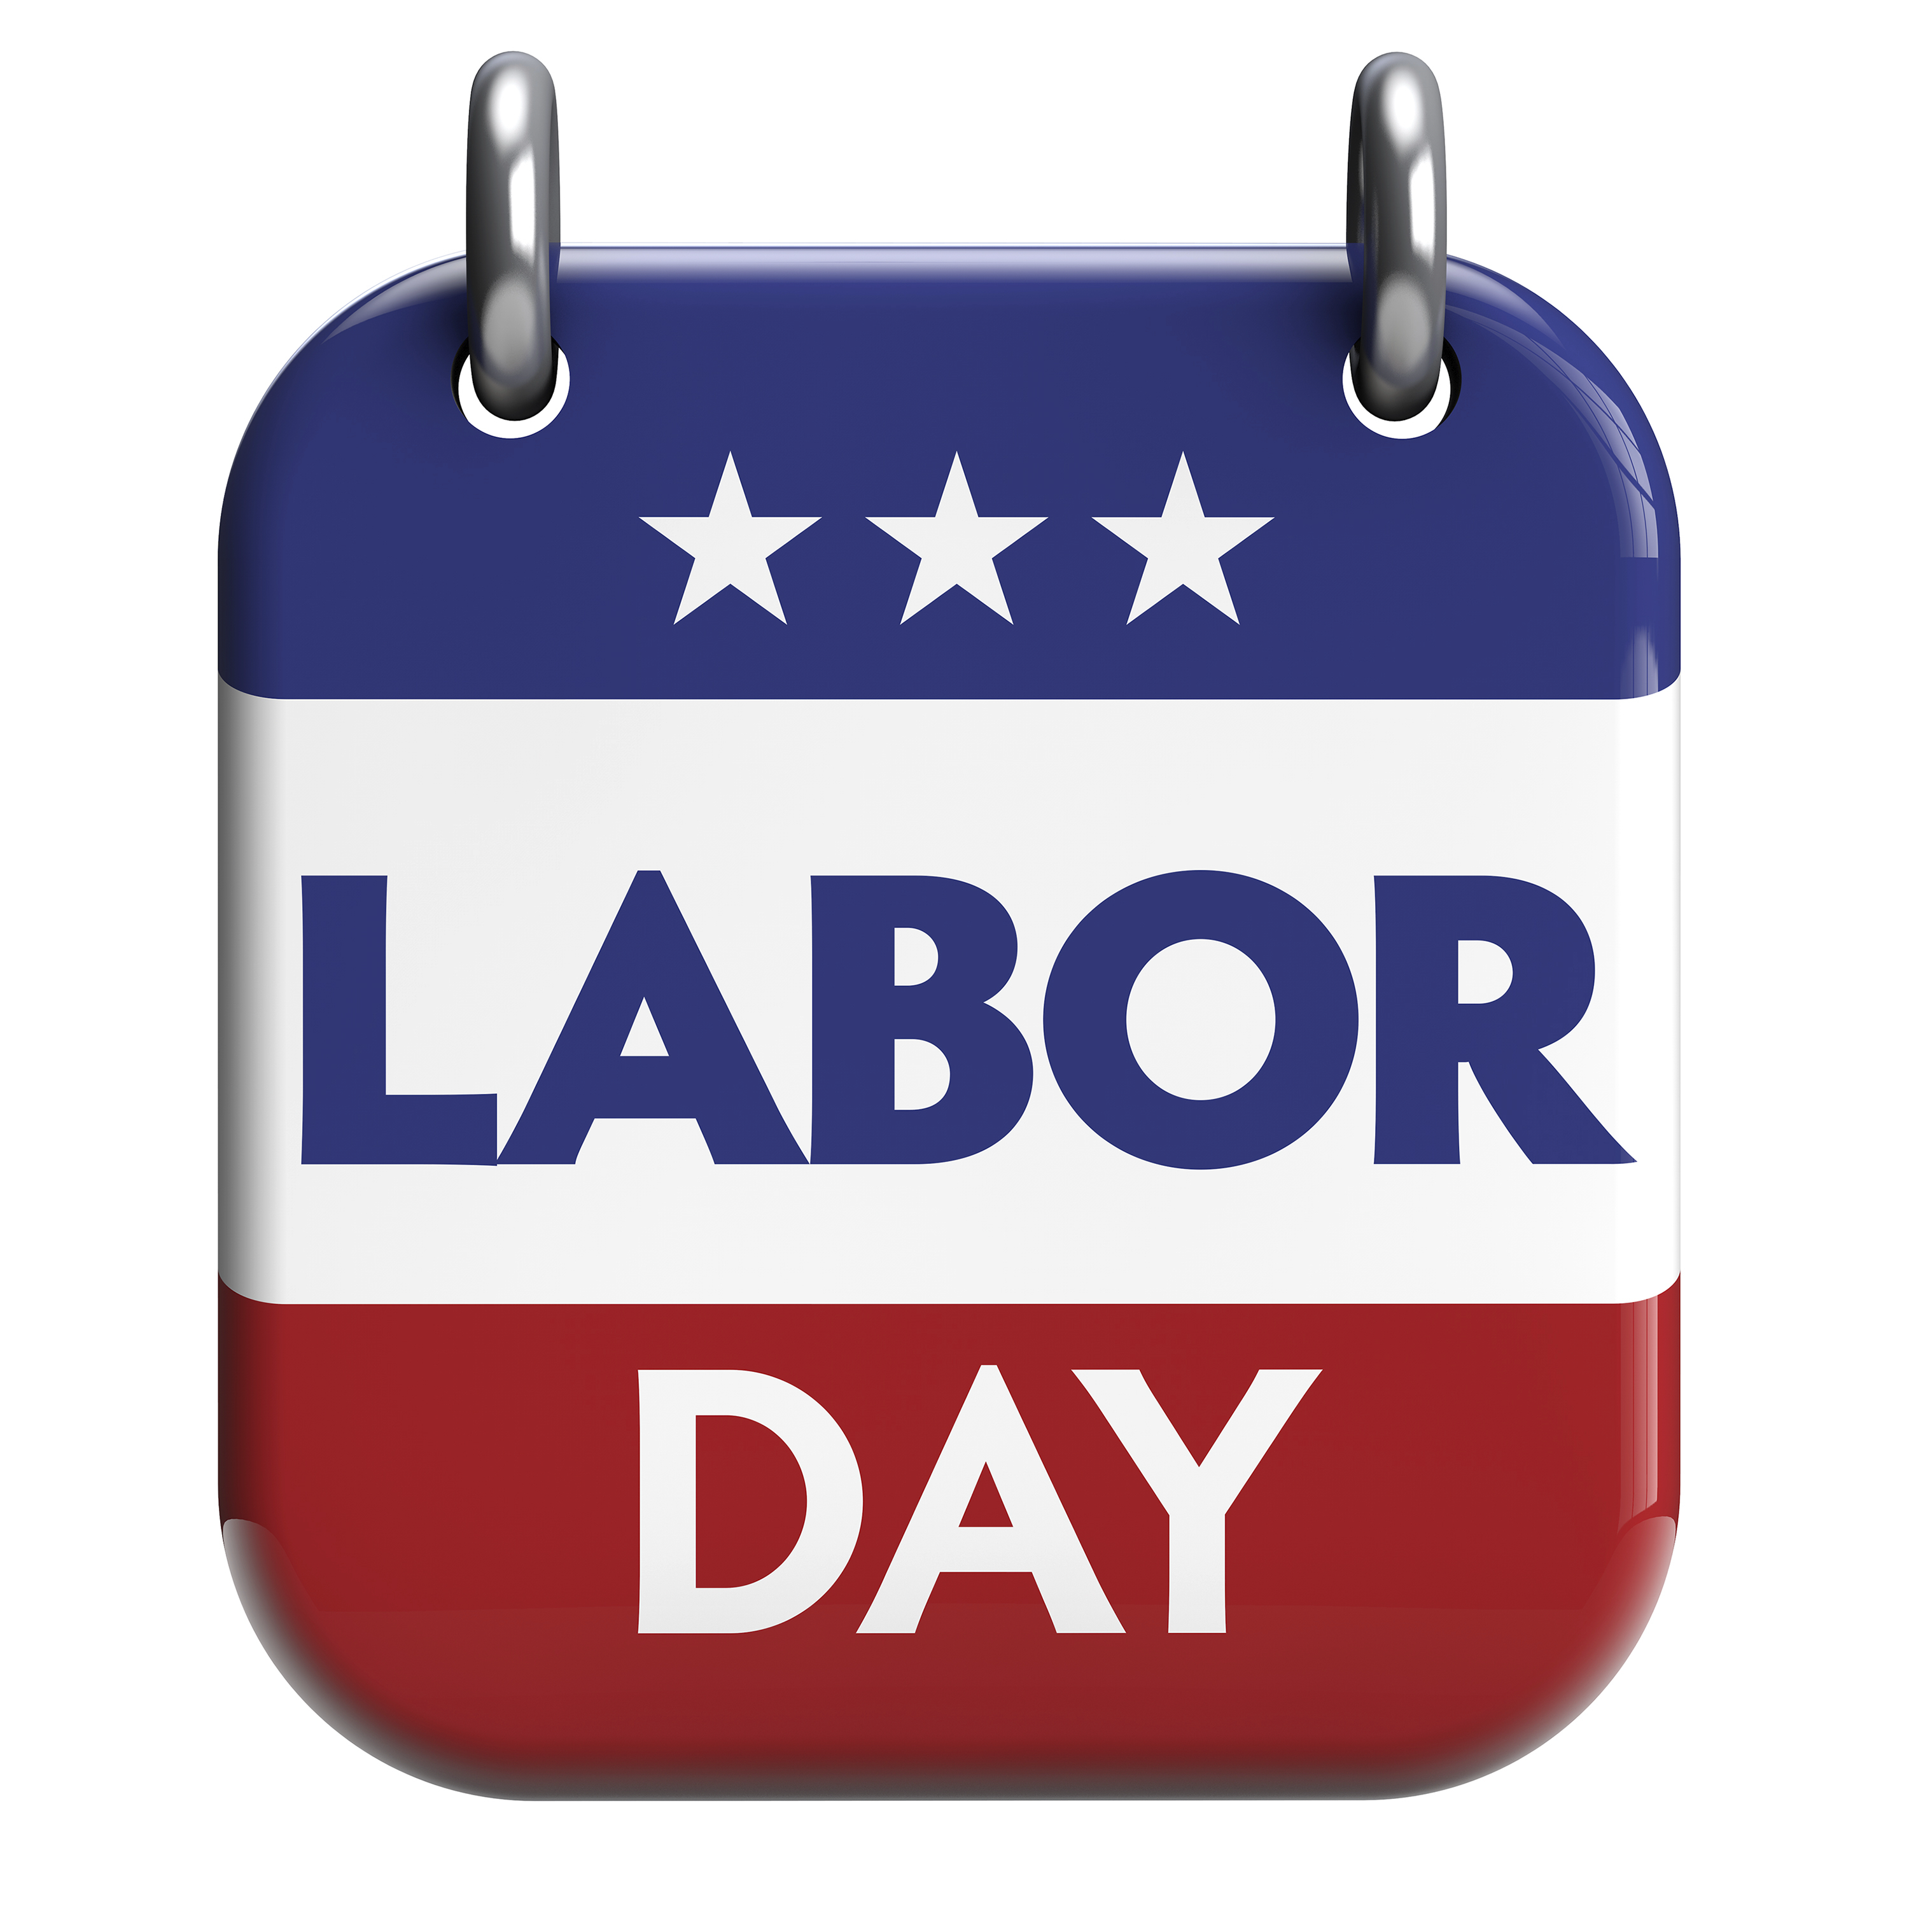 Labor day clipart transparent background